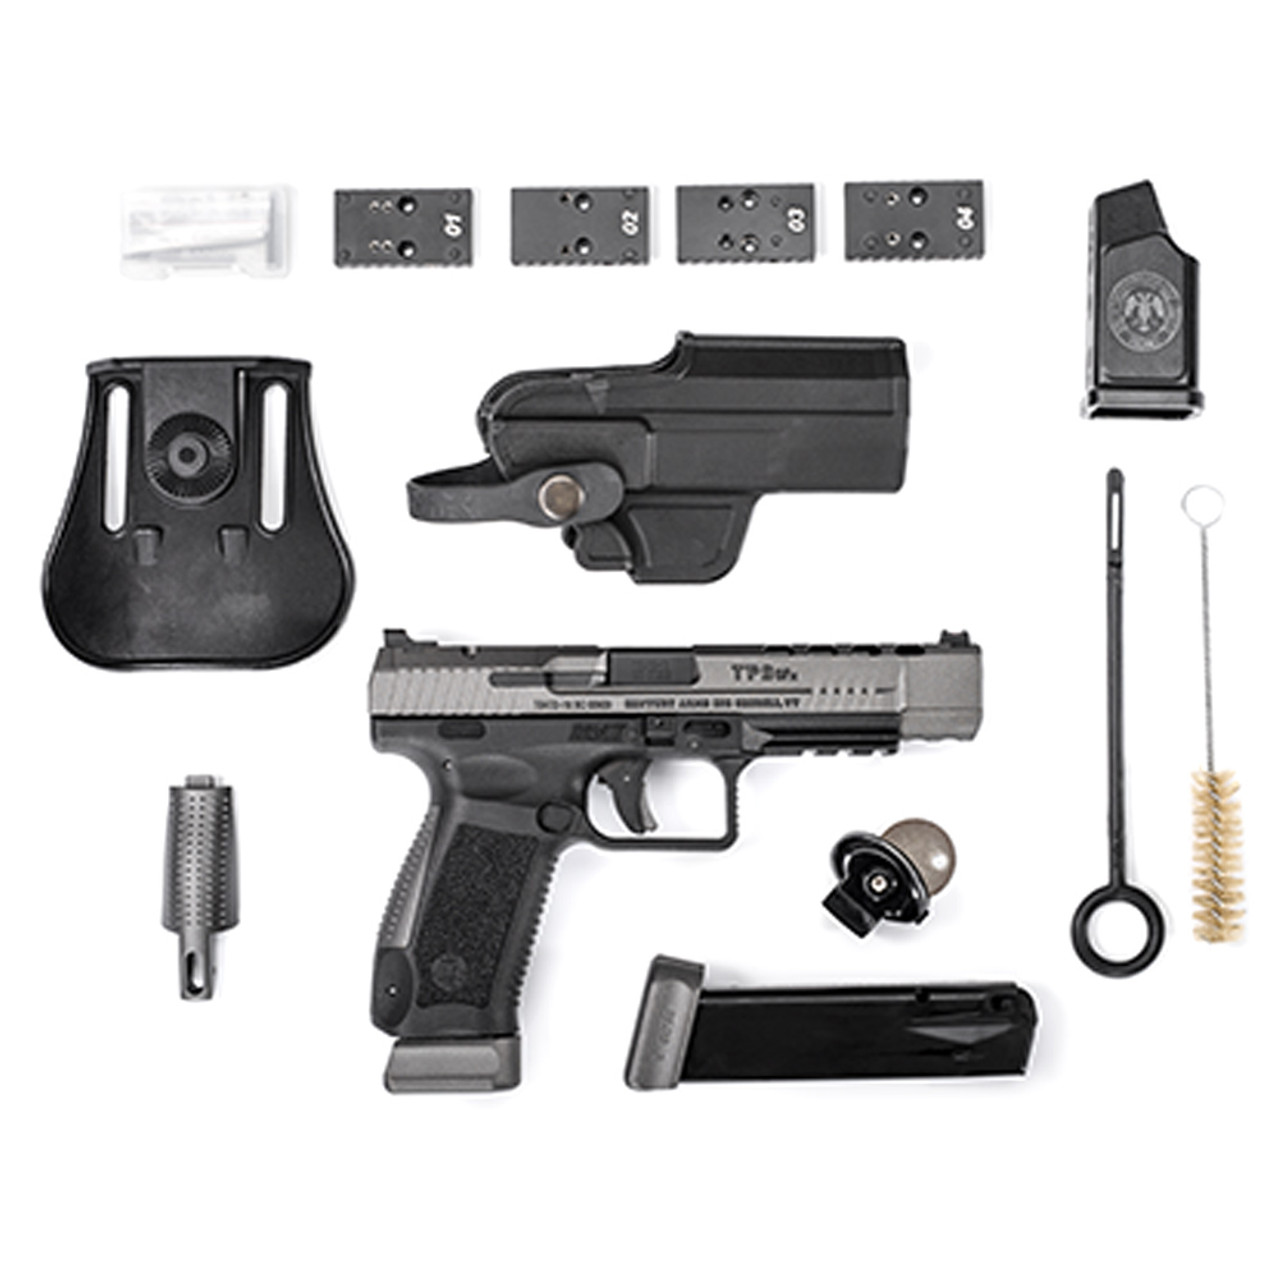 CANIK TP9SFX 9mm 5 25in Barrel 2x 20Rd Mag Two-Tone Pistol (HG3774G-N)